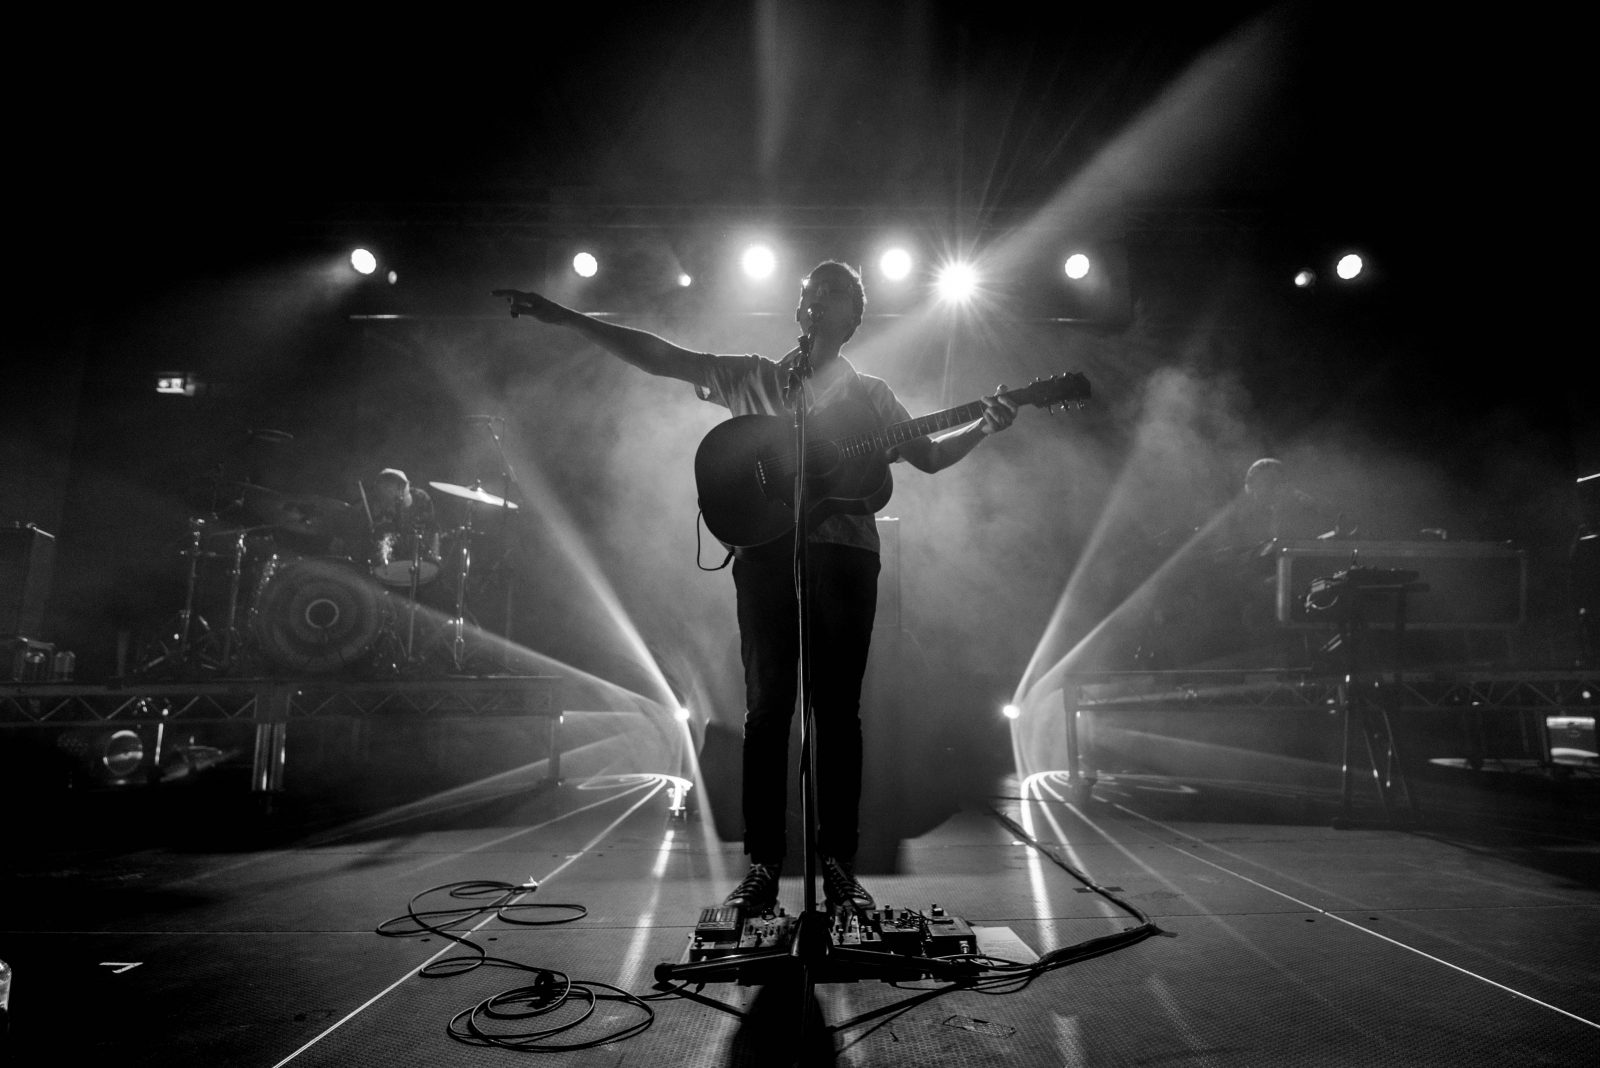 photograph shows singer of Ball Park Music silhouetted on stage